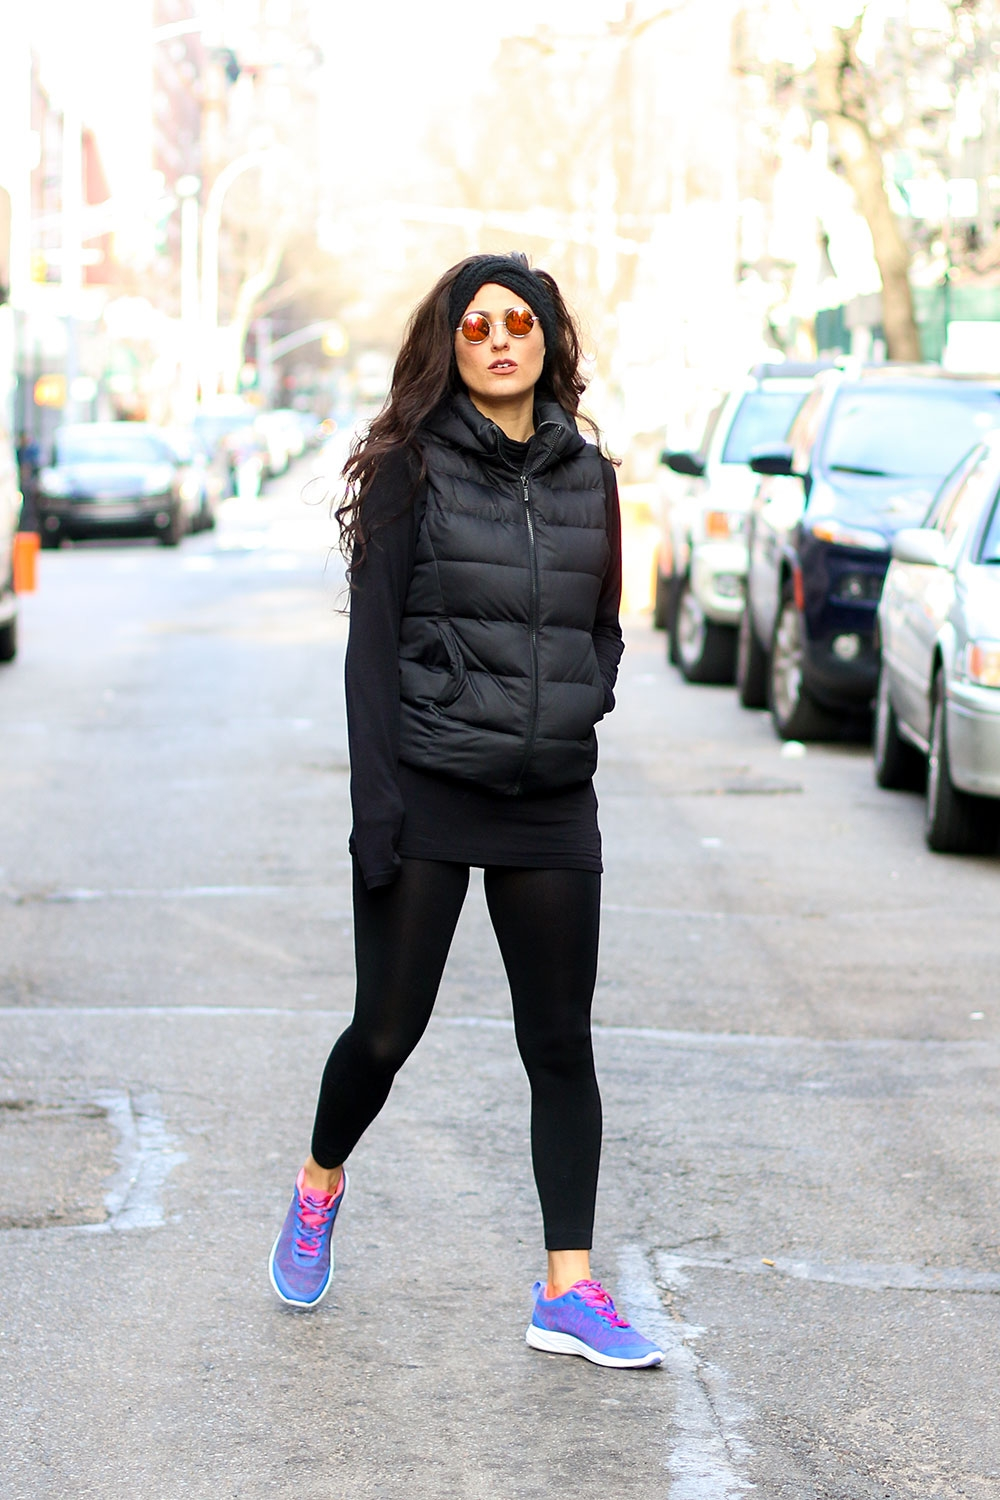 Do The Hotpants Dana Suchow Colorful Sneakers Running Fashion All Black Outfit Goth Style Winter Running Clothes DTHIMG_5817